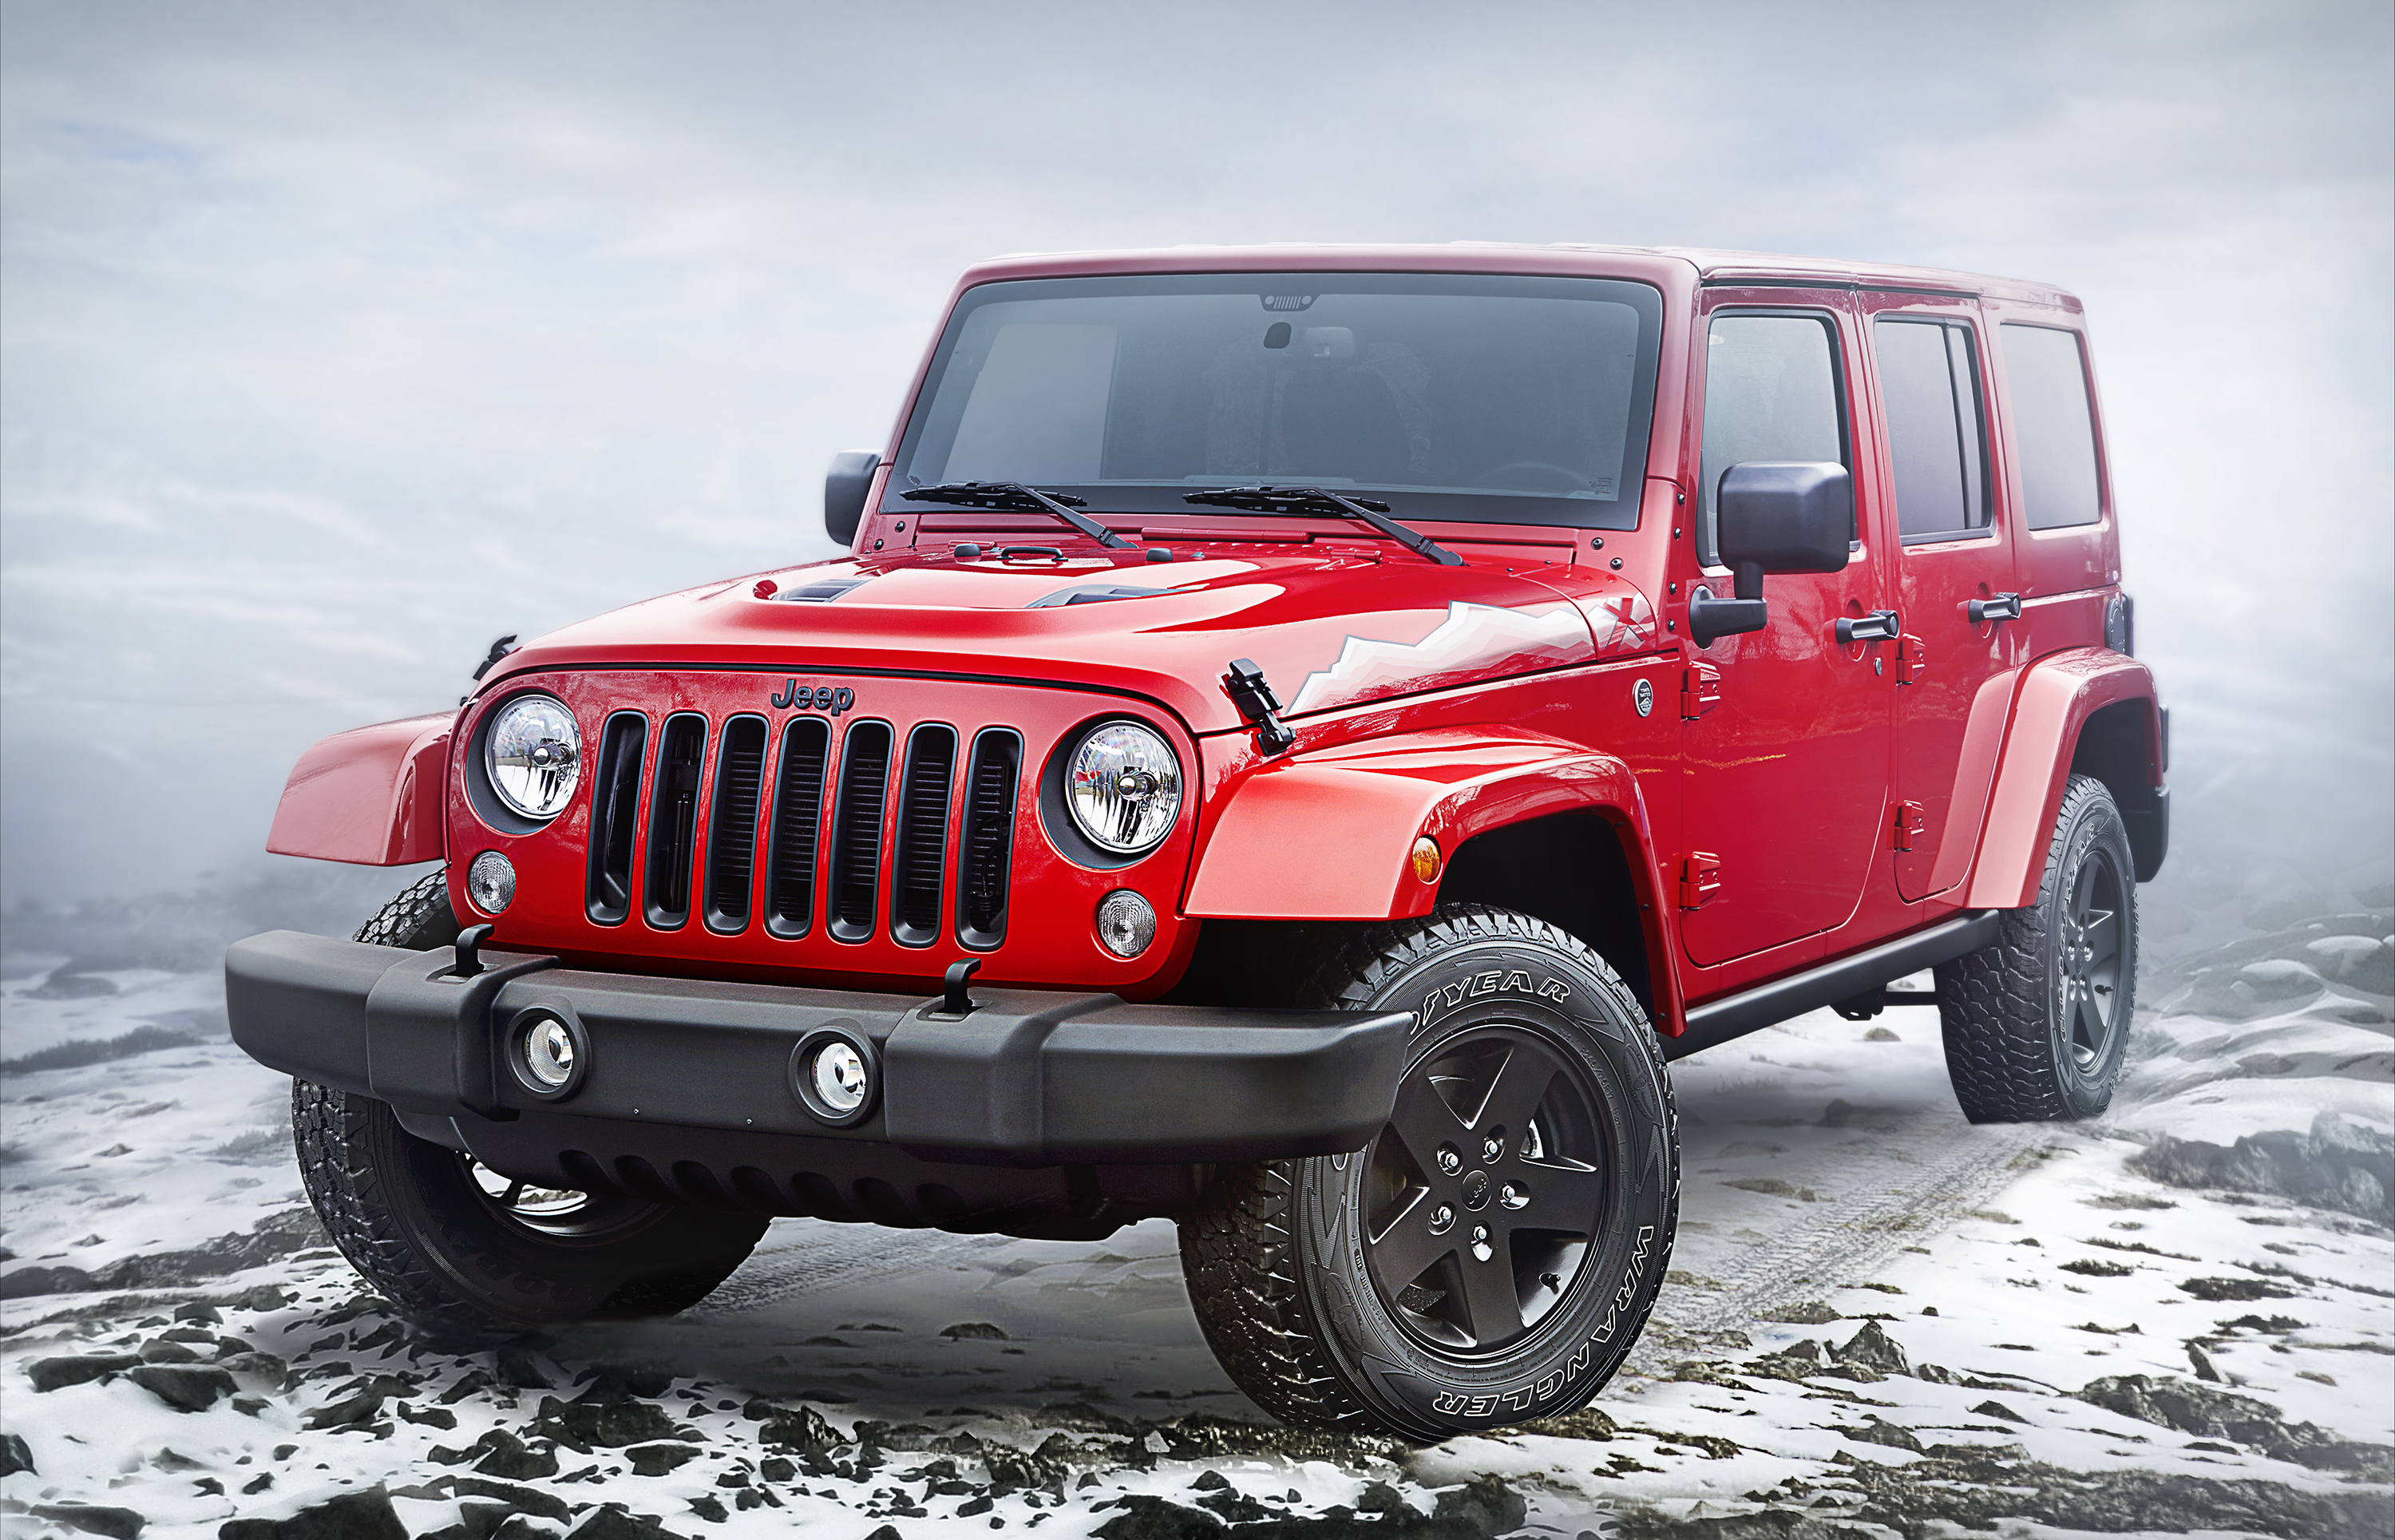 Aluminum Expect it in the 2017 Jeep Wrangler